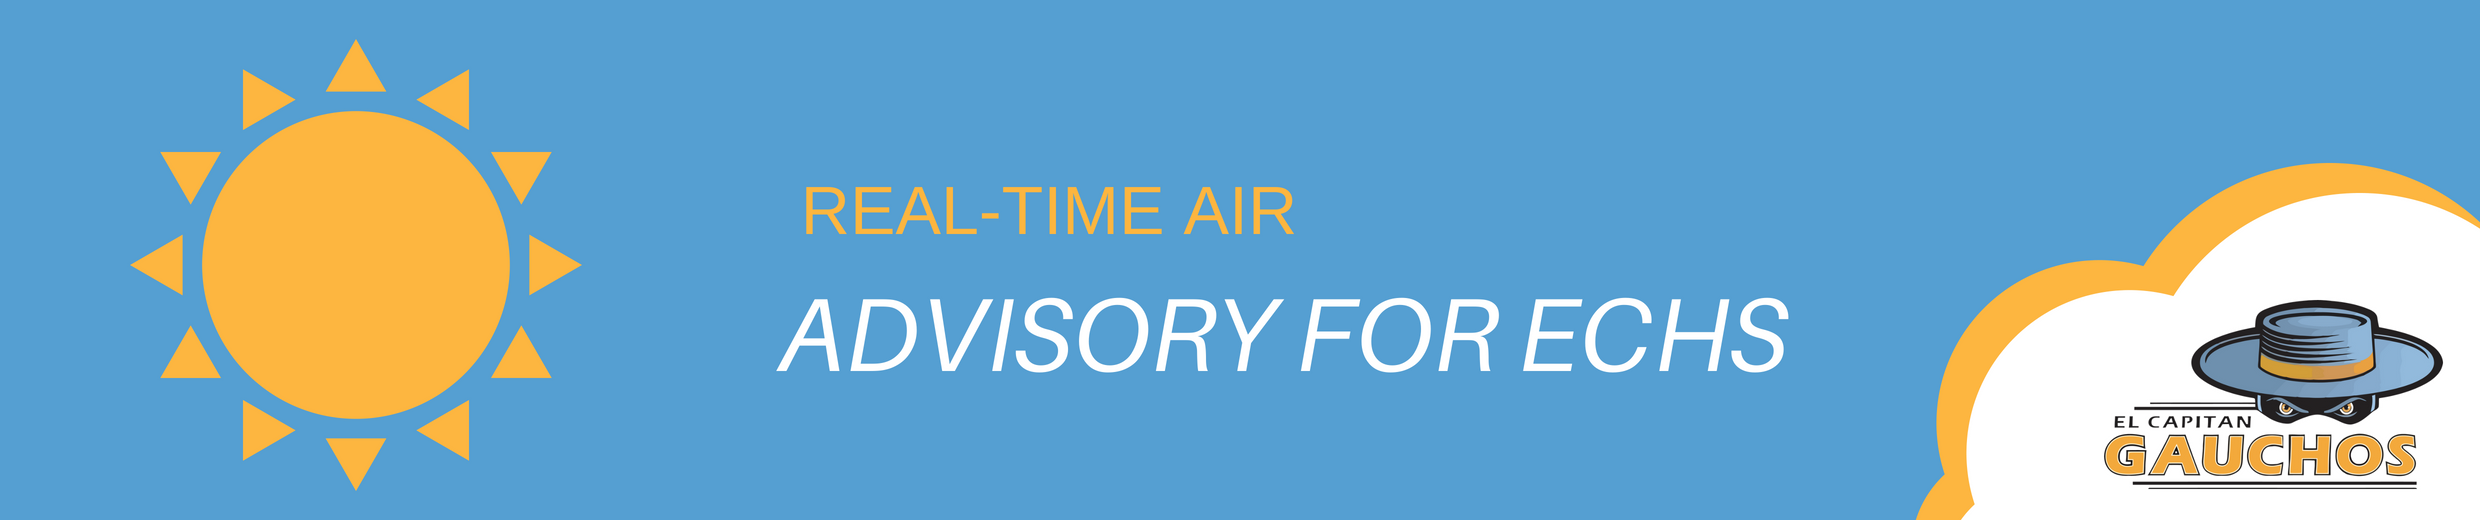 ECHS Real-Time Air Advisory